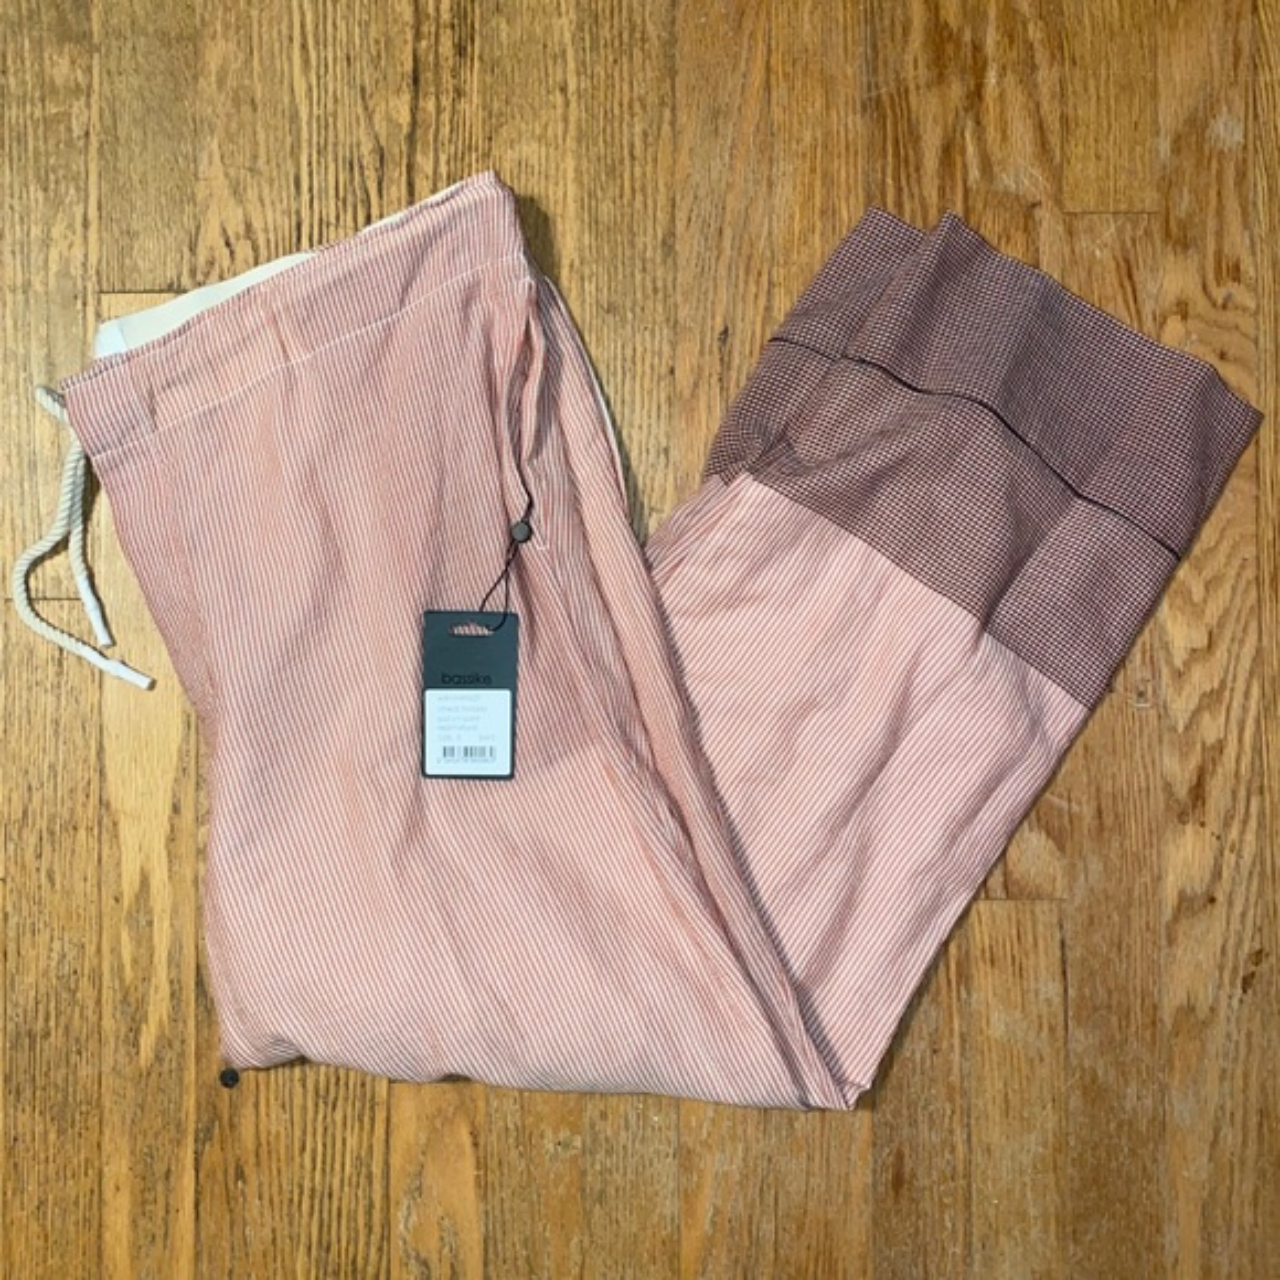 Product Image 1 - NWT Bassike Travel Pull On